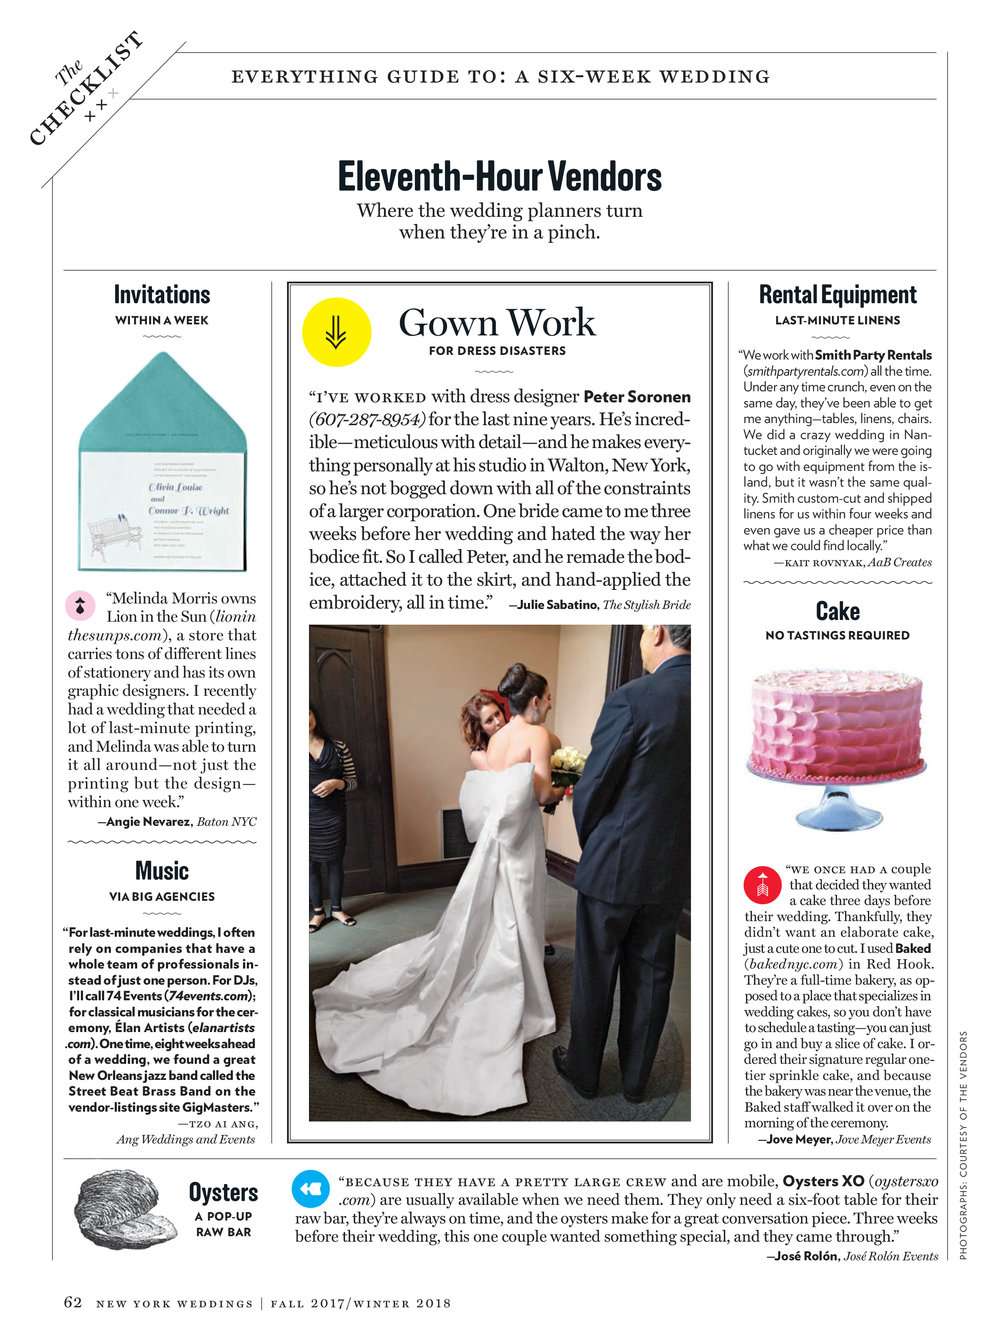 New York Magazine Weddings 2018: How To Plan A Wedding In 6 Weeks